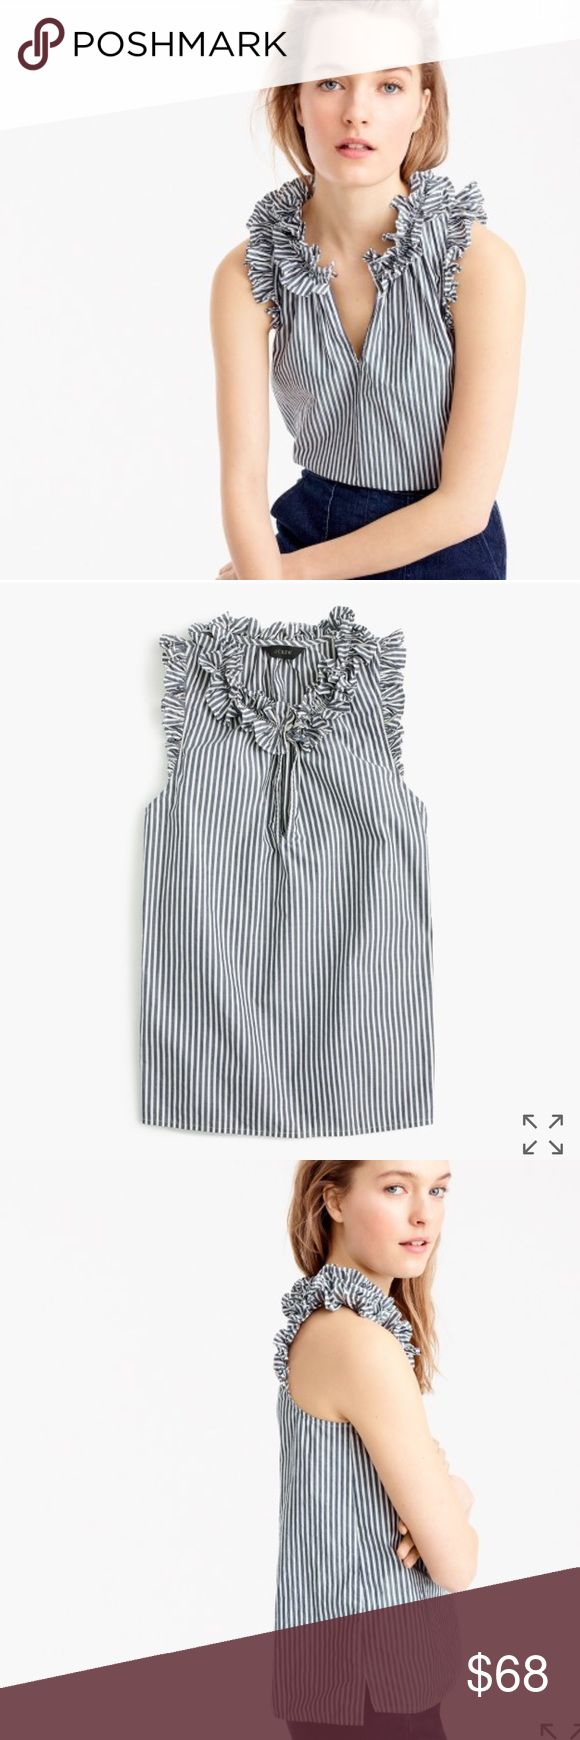 "J. Crew Ruffle Top in Navy Stripe, Size 14 26"" Long. The perfect shirt for work, weekends, wherever. With ruffles at the neck and arms, it's feminine and put together without being fussy. Cotton. Button placket. Machine wash J. Crew Tops Blouses"